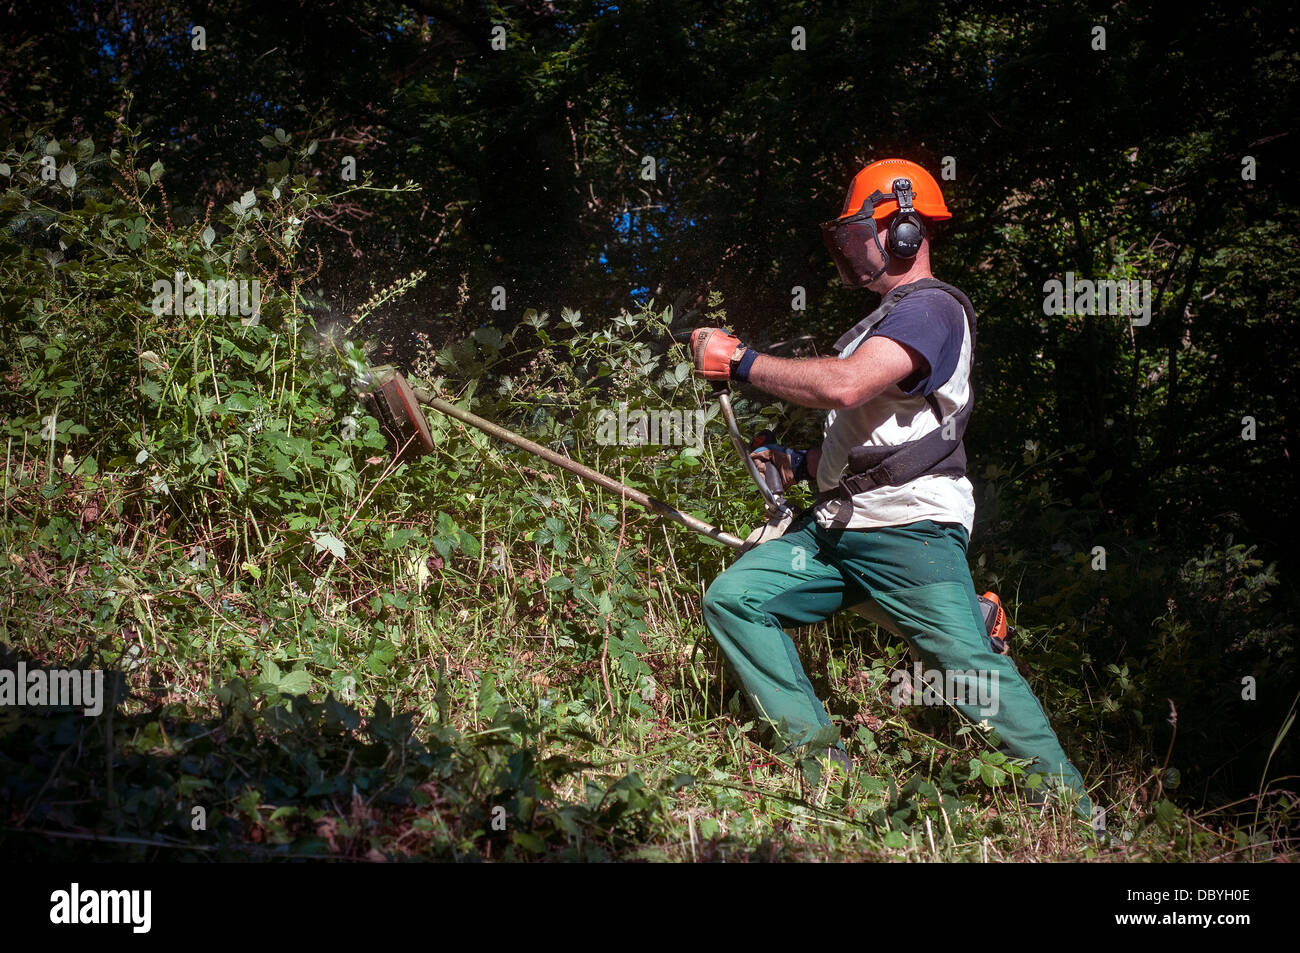 strimming,safety equipment,strimmer,strimmers,farmer, united kingdom, tree, meadow, trail, grazing, tourist destinati - Stock Image